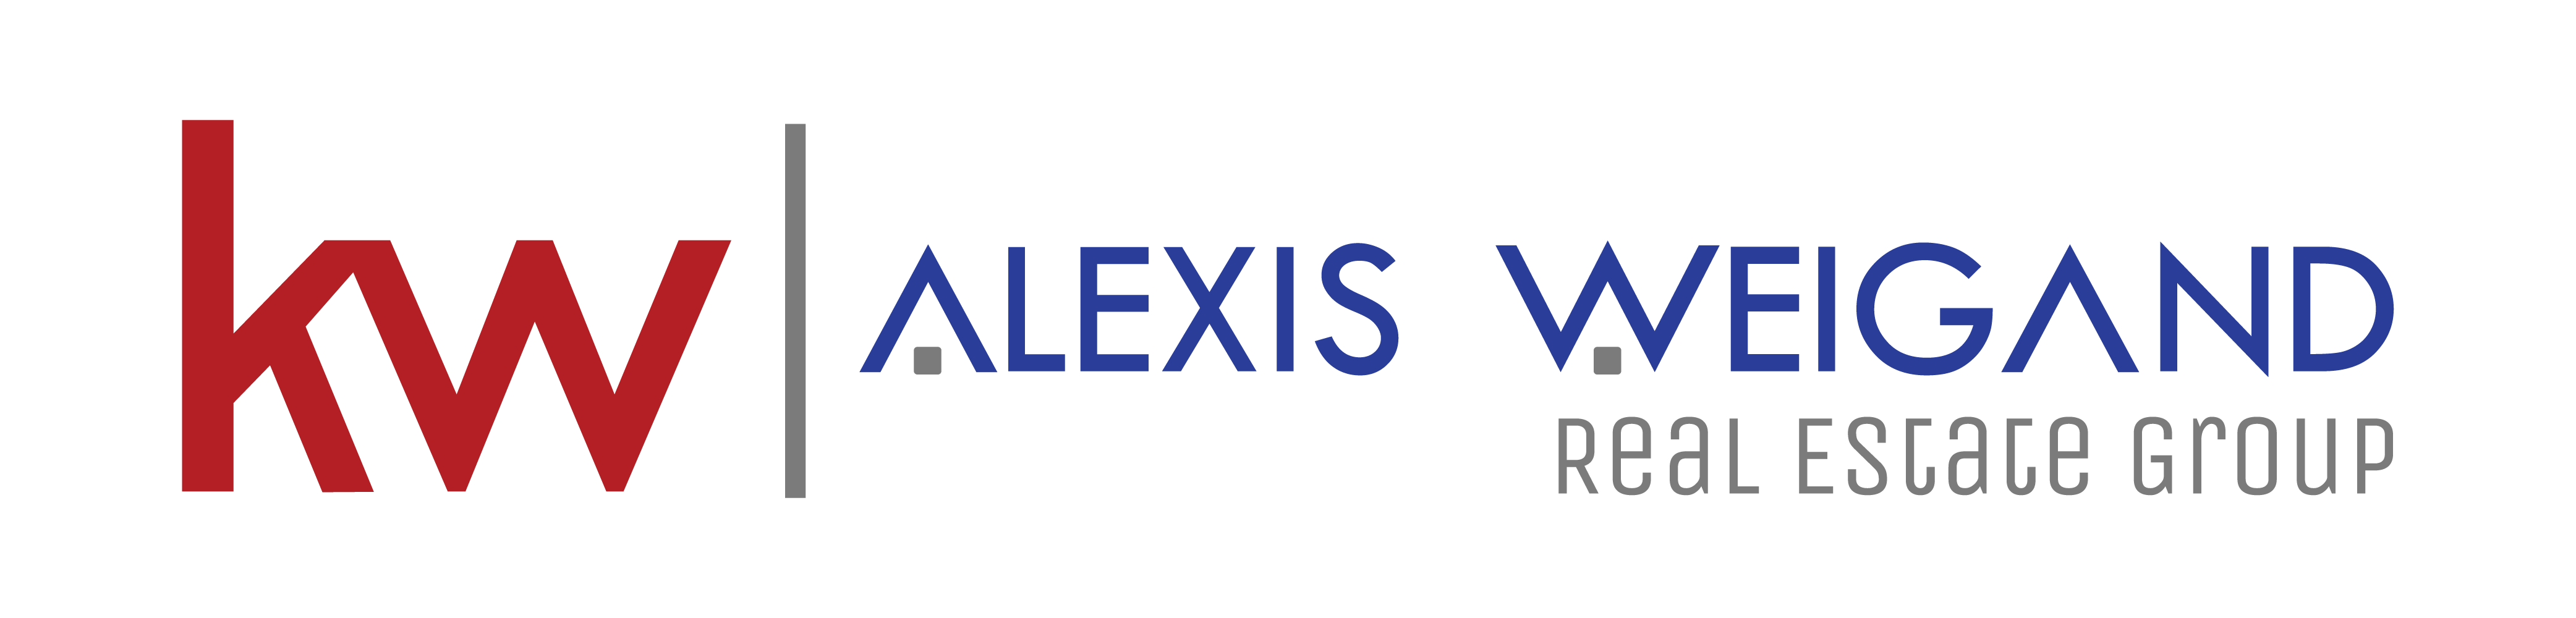 Alexis Weingard Real Estate